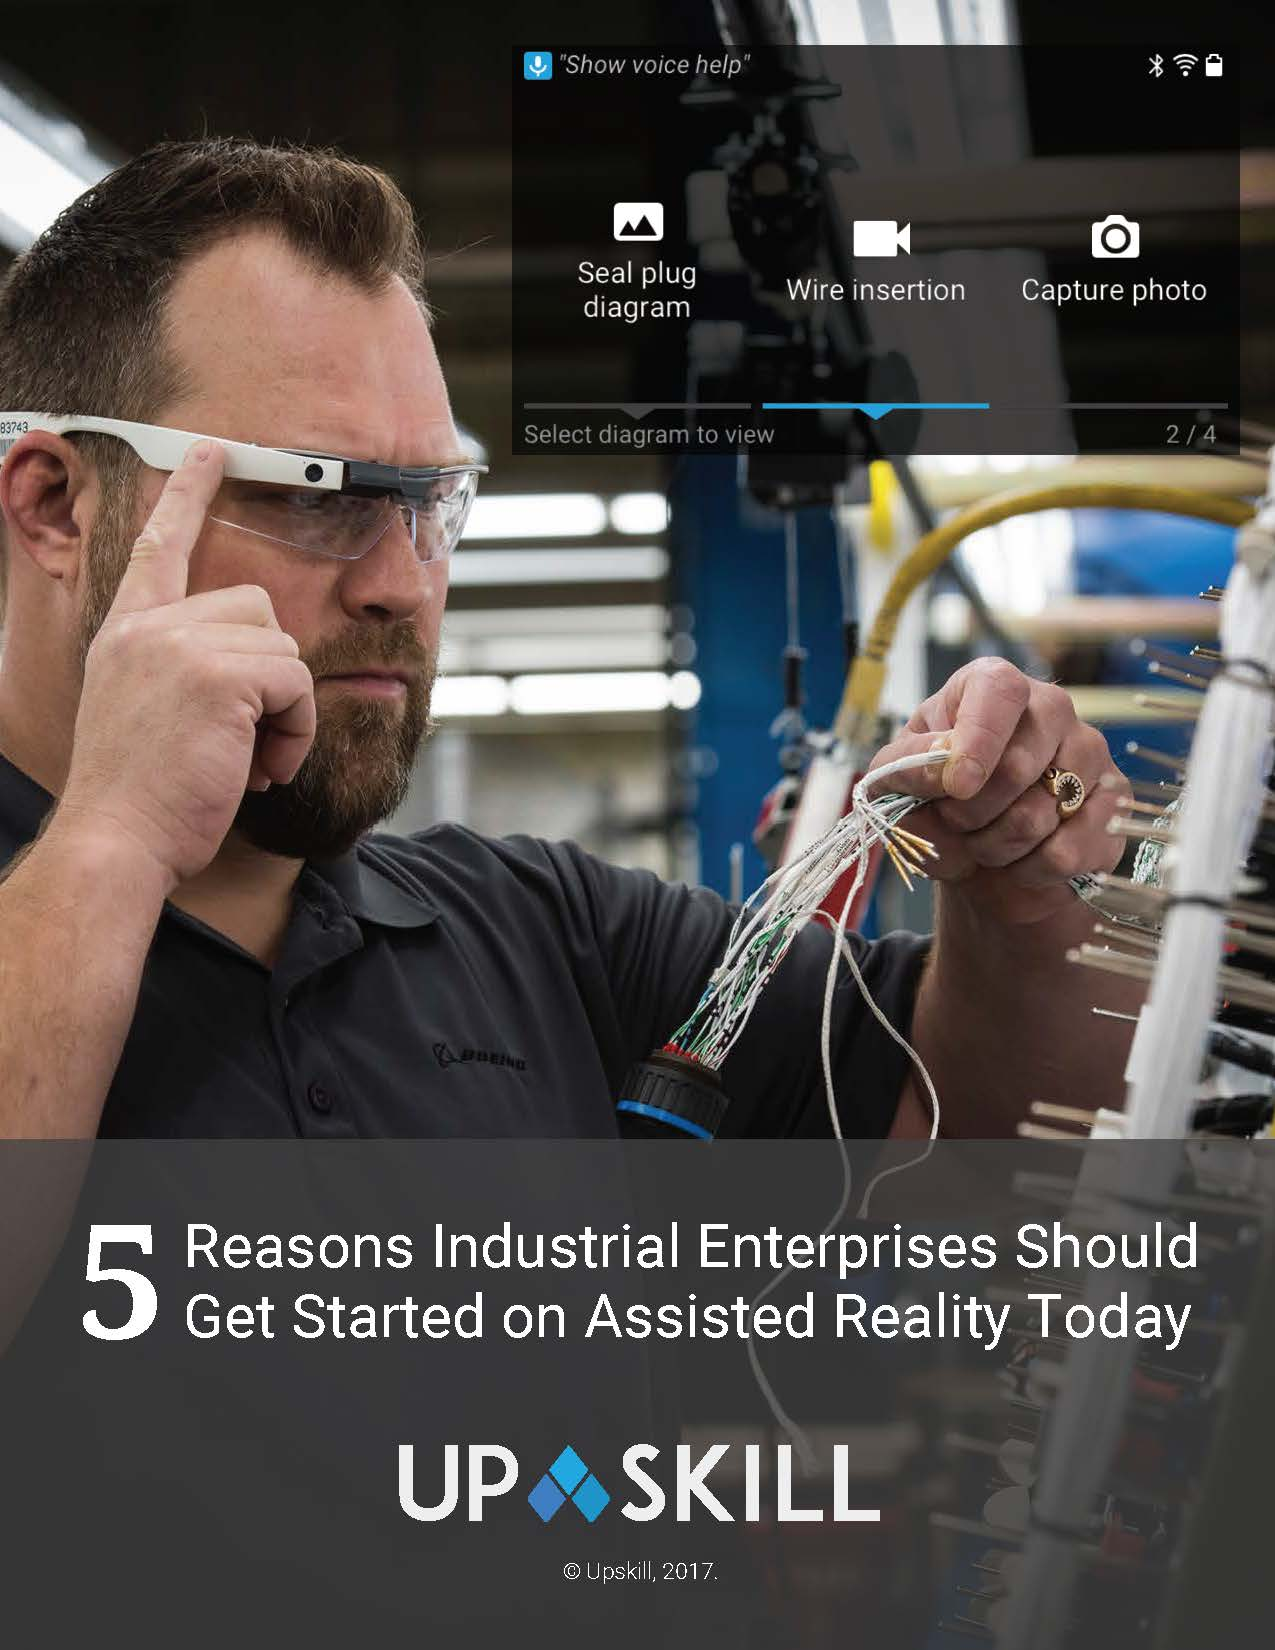 Whitepaper on Augmented Reality in Retail: 5 Reasons Industrial Enterprises Should Get Started on Assisted Reality Today Image